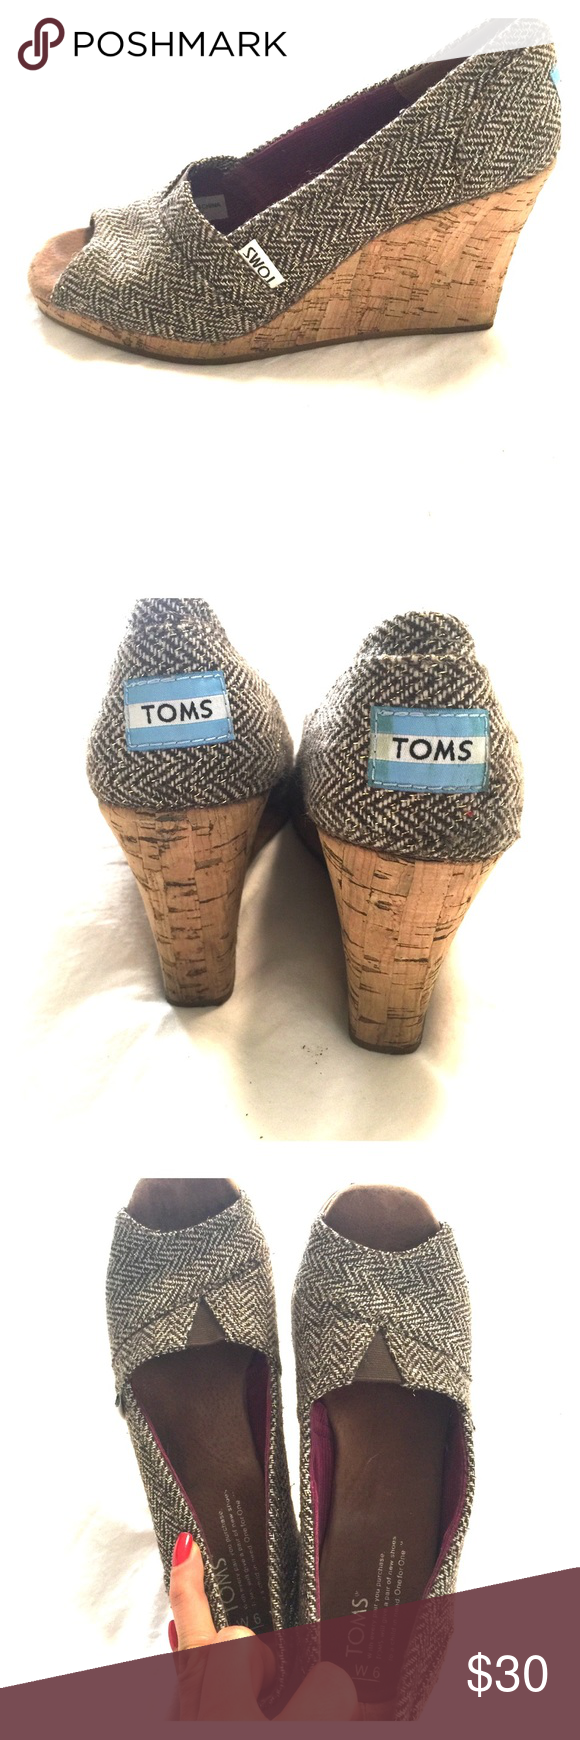 TOMS cork wedge sandal TOMS cork wedge sandal. Very pretty, comfortable wedge in very good condition! TOMS Shoes Wedges